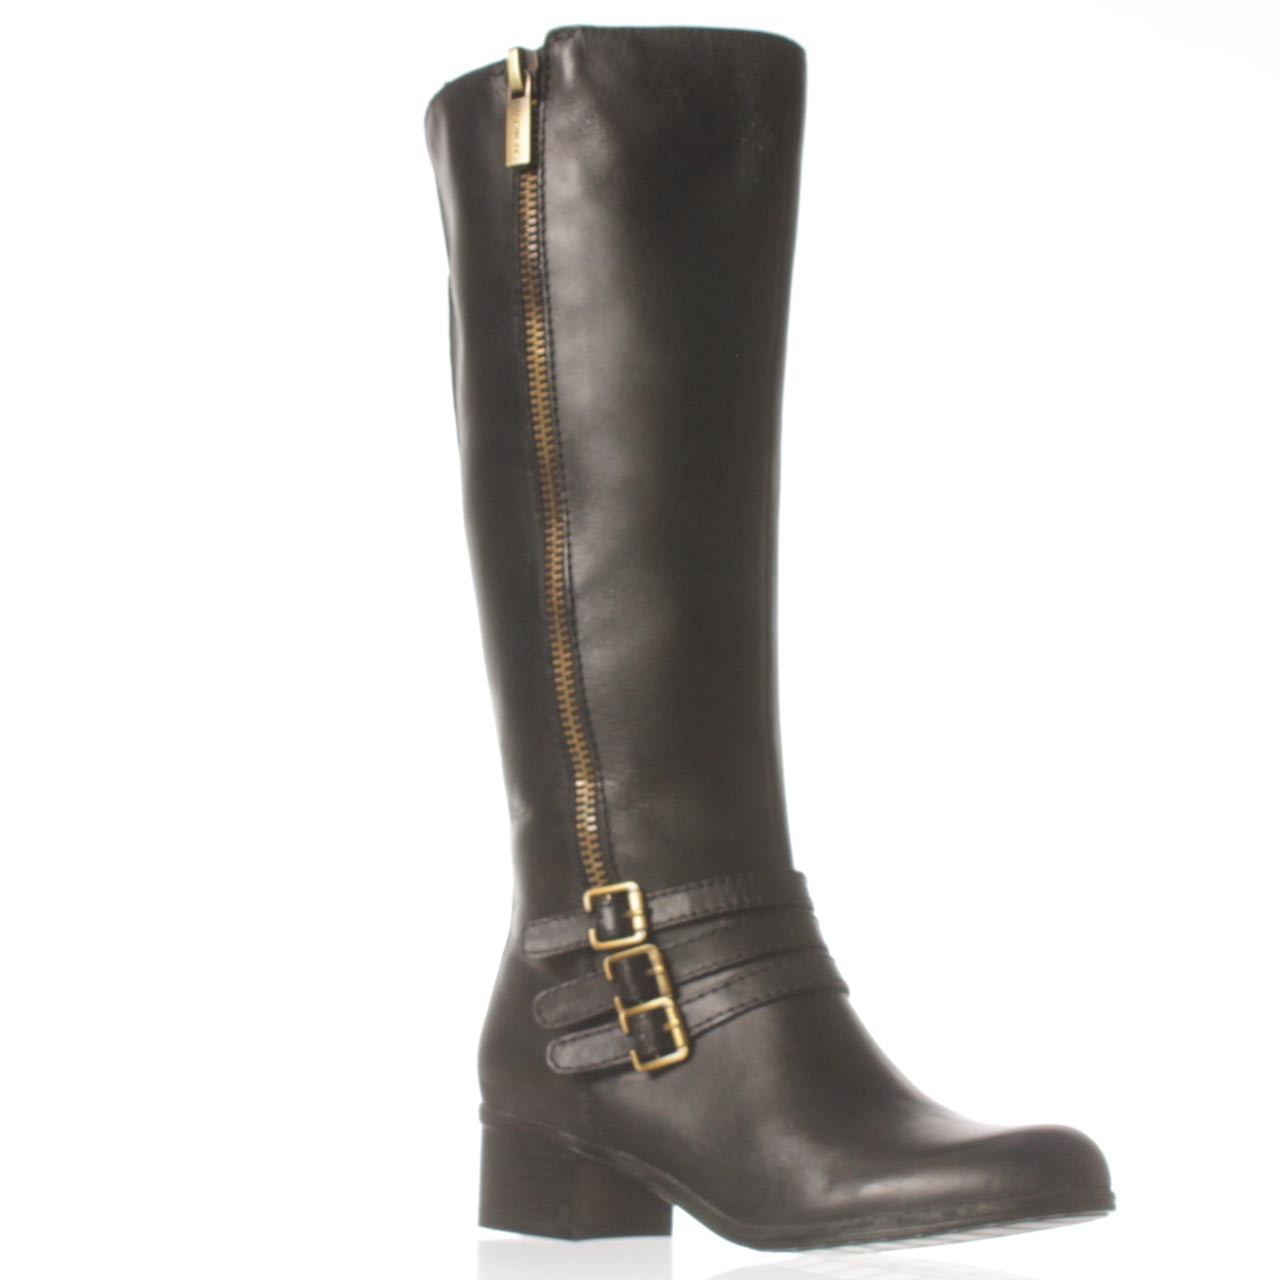 Shop for women's boots from your favorite brands! Discover wedges, casual, tall boots, riding and combat boots. Gray Parrish Extra Wide-Calf Boot - Women. $ $ Taupe Sana Wide-Calf Boot - Women. Black Taliah Buckle Wide-Calf Boot - Women. Natural Soul by Naturalizer $ $ 8 just sold.